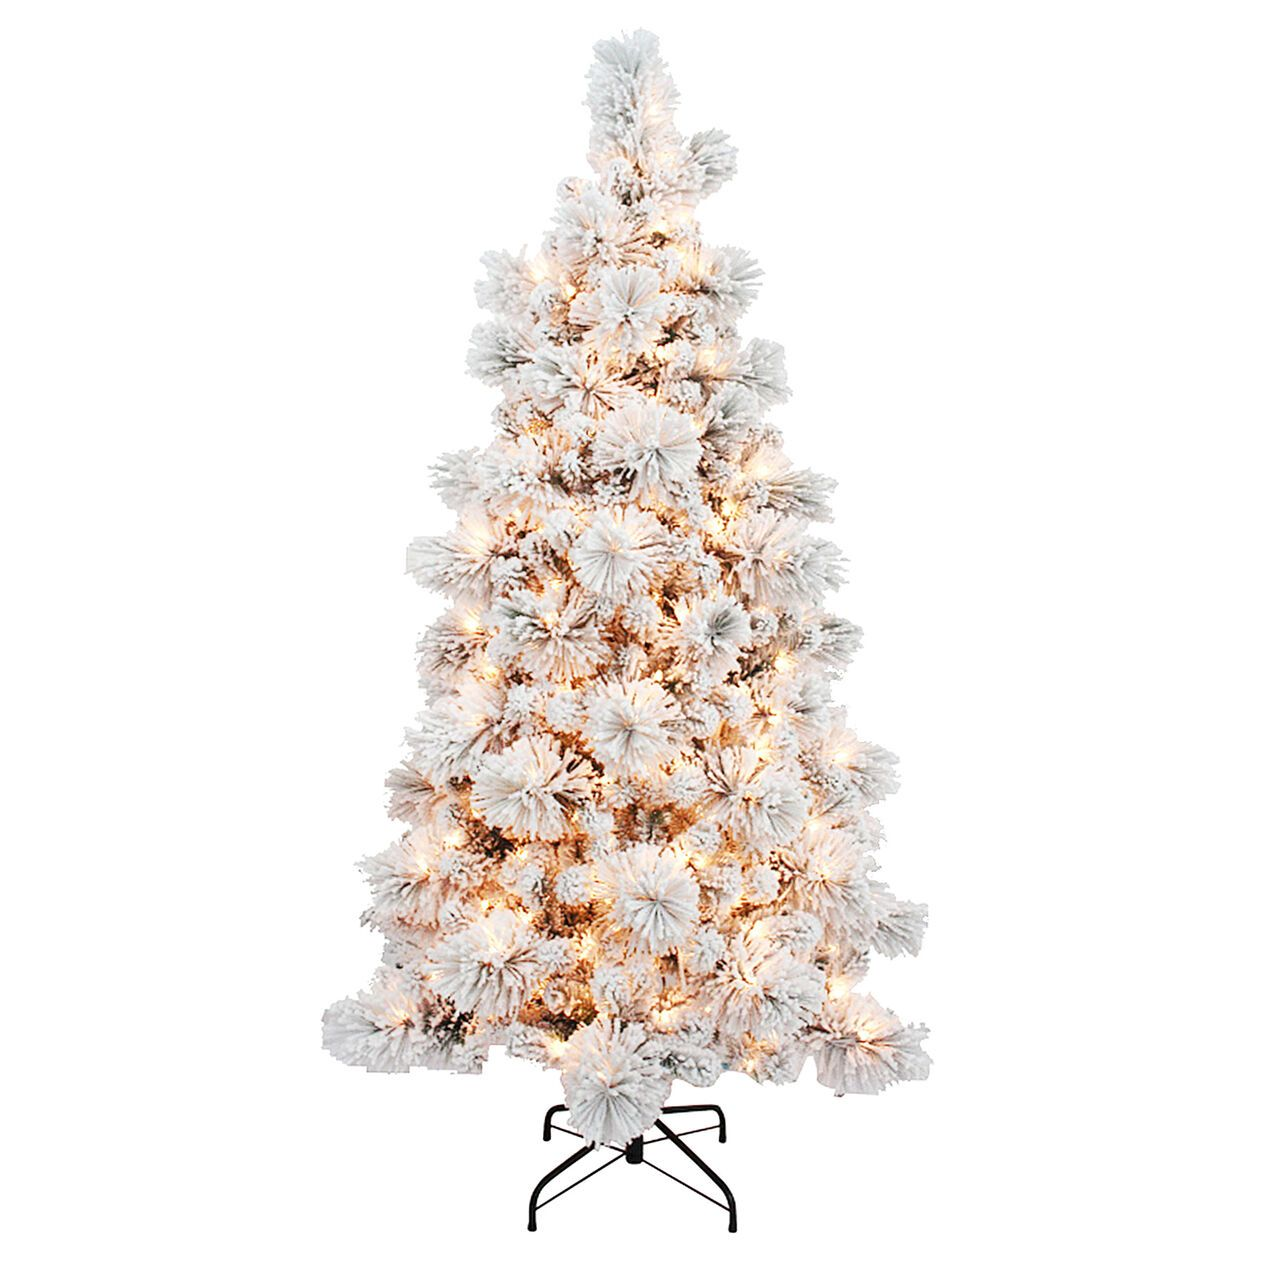 D13 6 Pre Lit Retro Monterey Pine Tree With 350 Clear Lights At Home Monterey Pine Lights Christmas Tree Shop